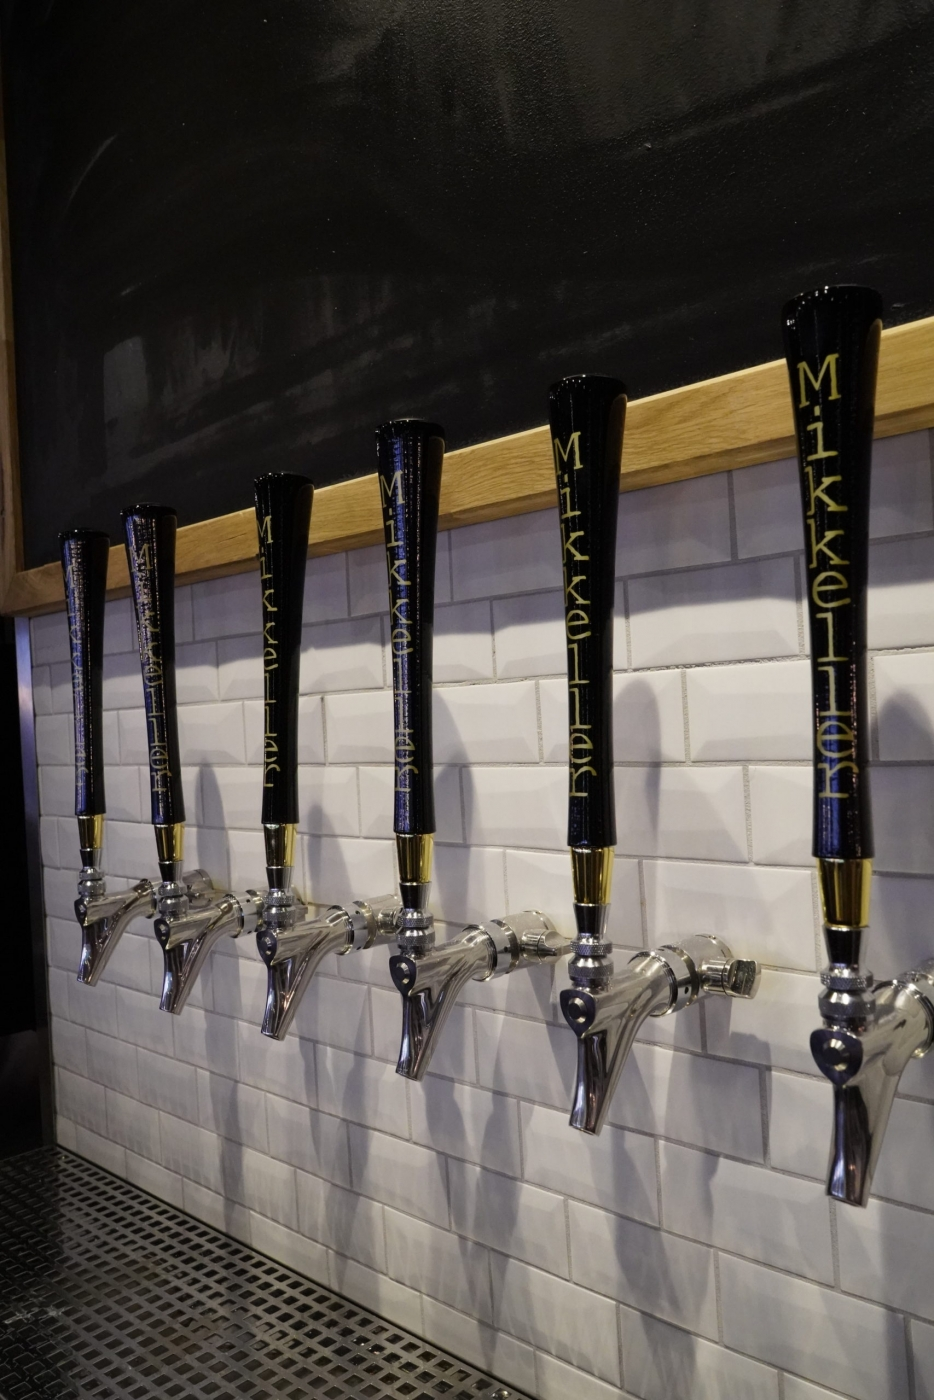 Mikkeller taps at the Brasserie Ulo. Photo by Brasserie Ulo - Hotel Arctic